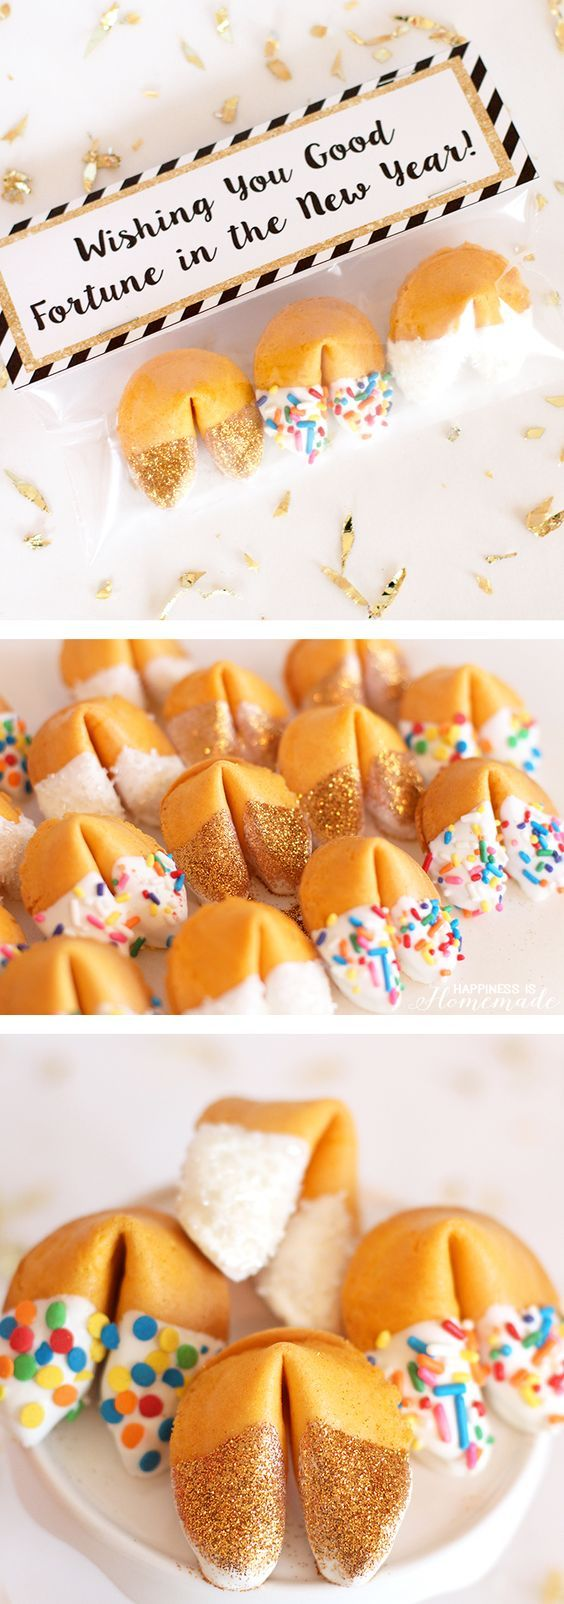 "Glitter Dipped Fortune Cookie Party Favors & Printable ""Wishing You Good Fortune in the New Year"" treat bag toppers - perfect for New Year's Eve parties! Happiness is Homemade"